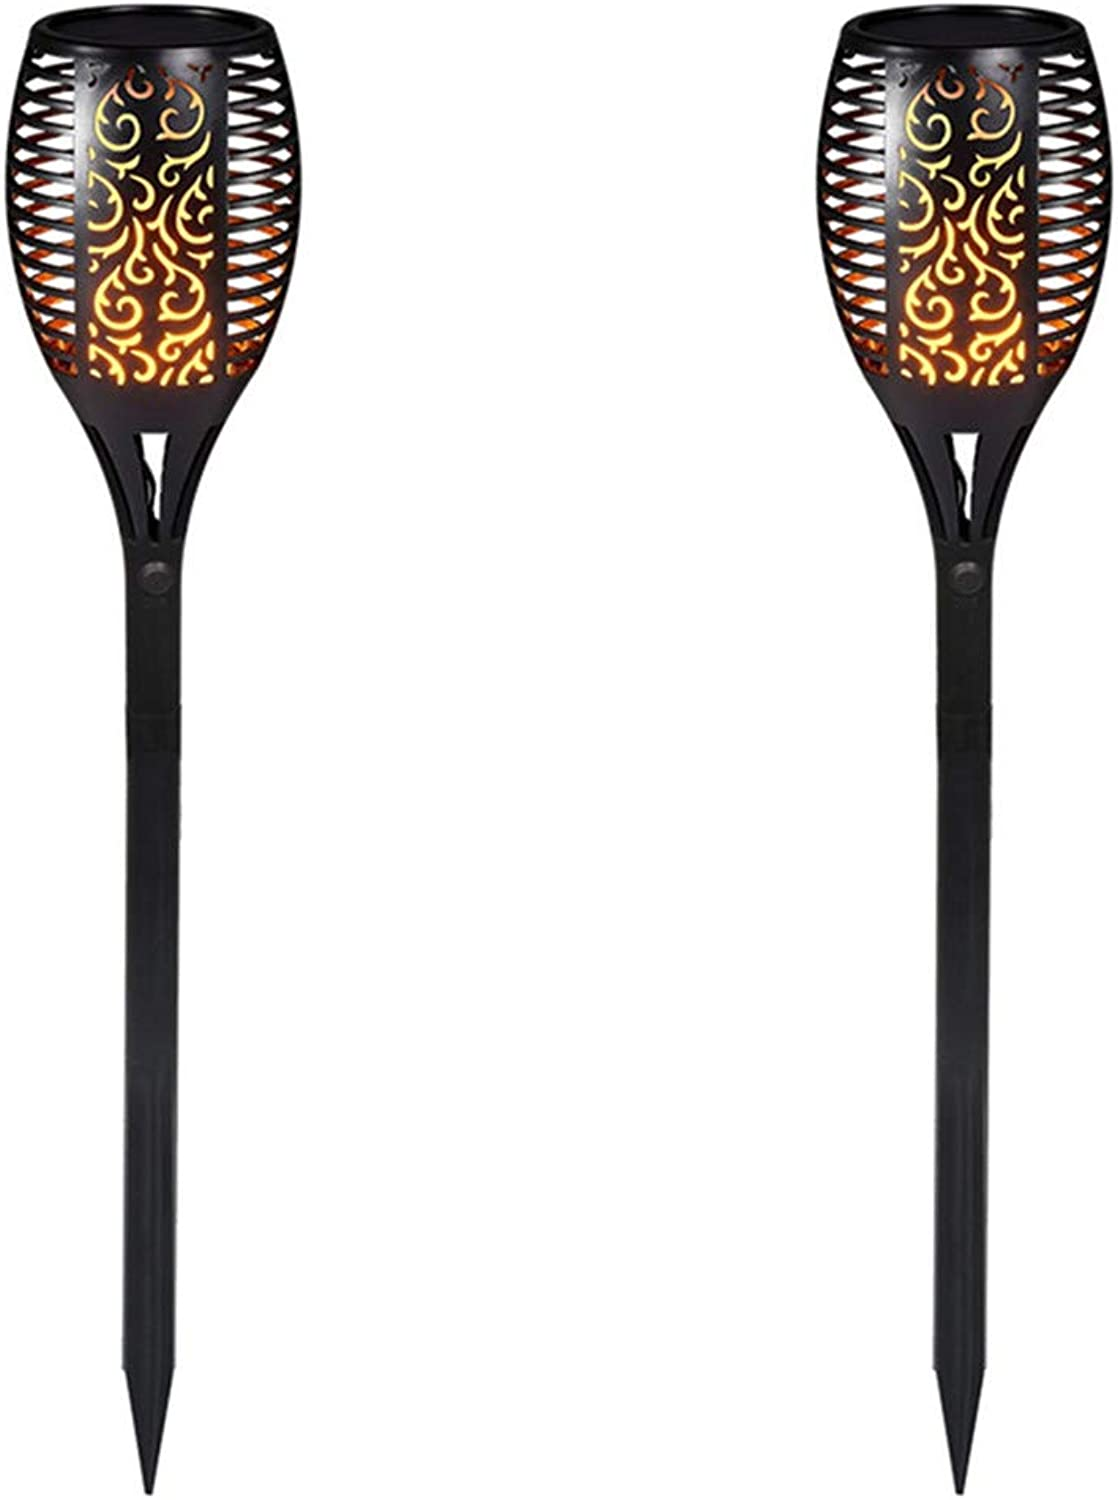 Wasserdichte LED Flicker Dancing Light Solar Energy Charging Flame Atmosphere Lampe für Bar Garden Path Patio,2PACK